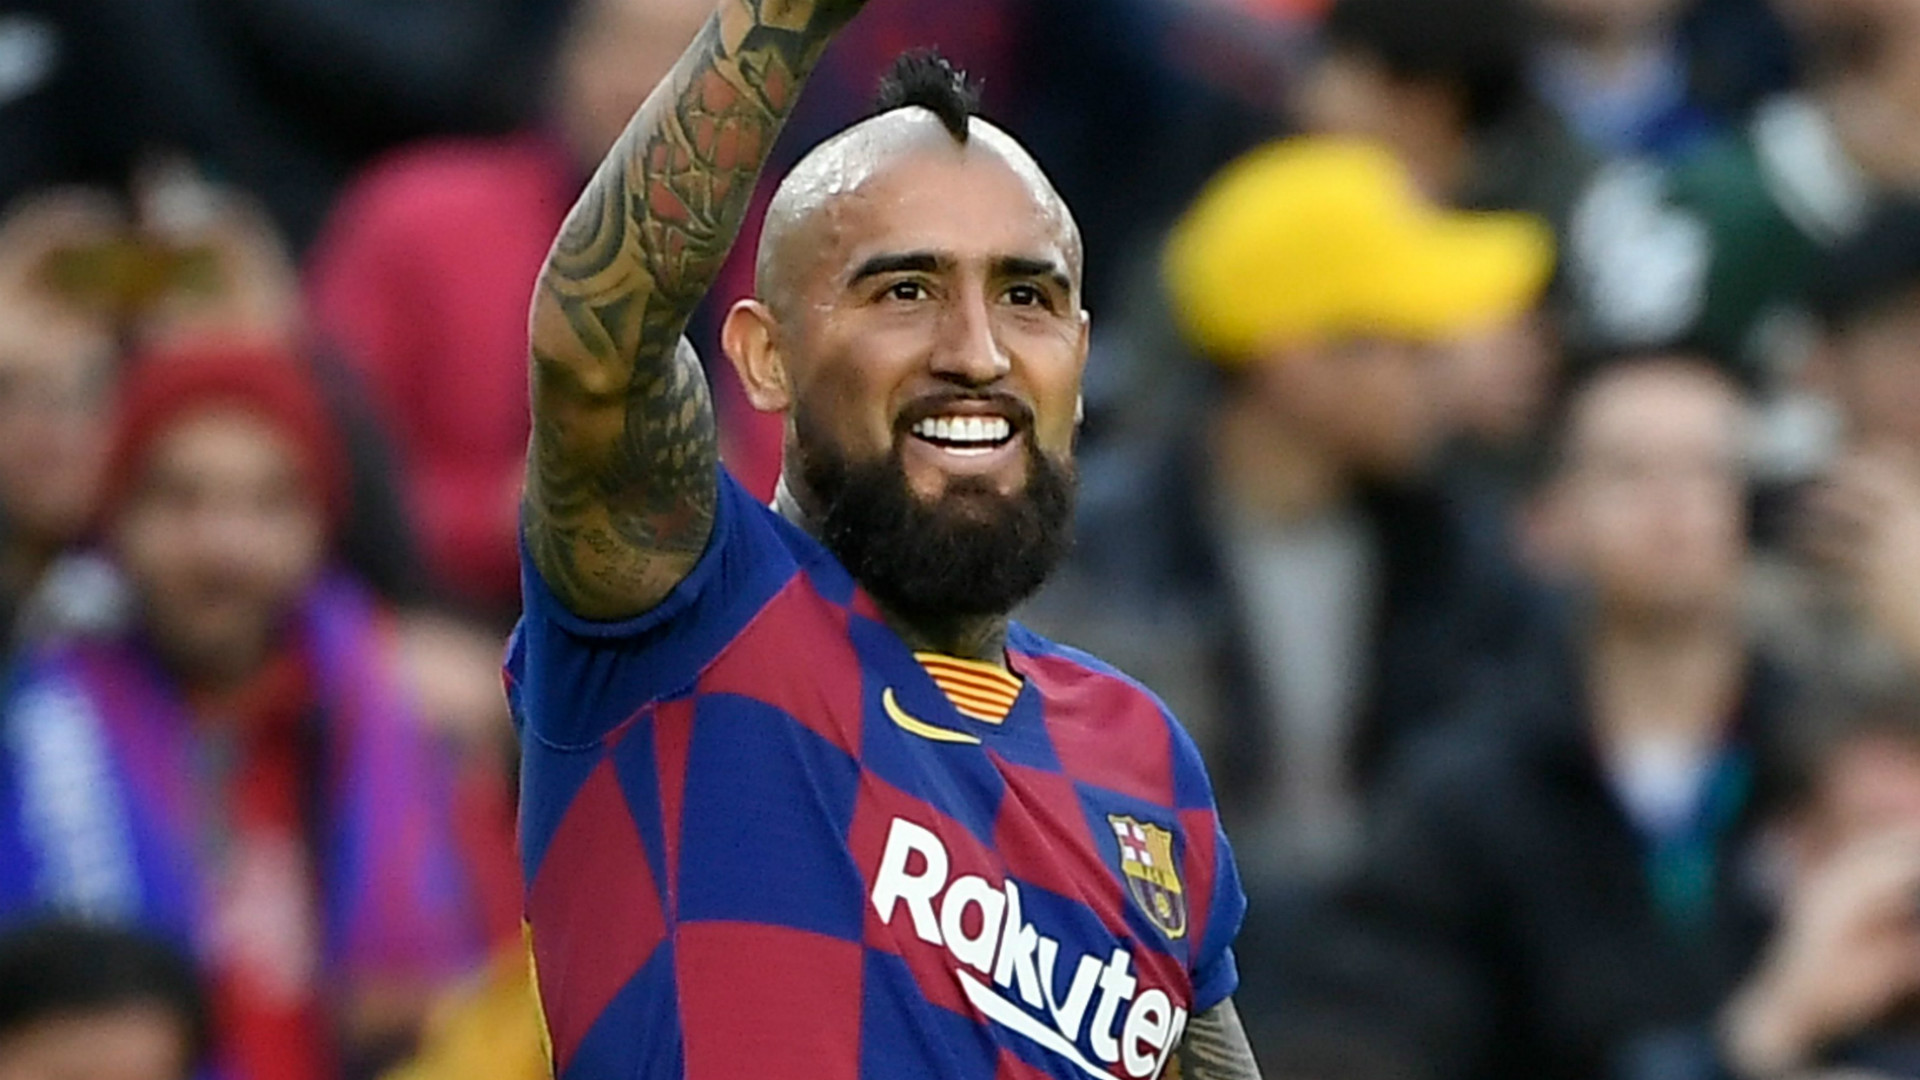 'There are 11 finals left' - Barca's Vidal targeting ninth consecutive title when La Liga resumes